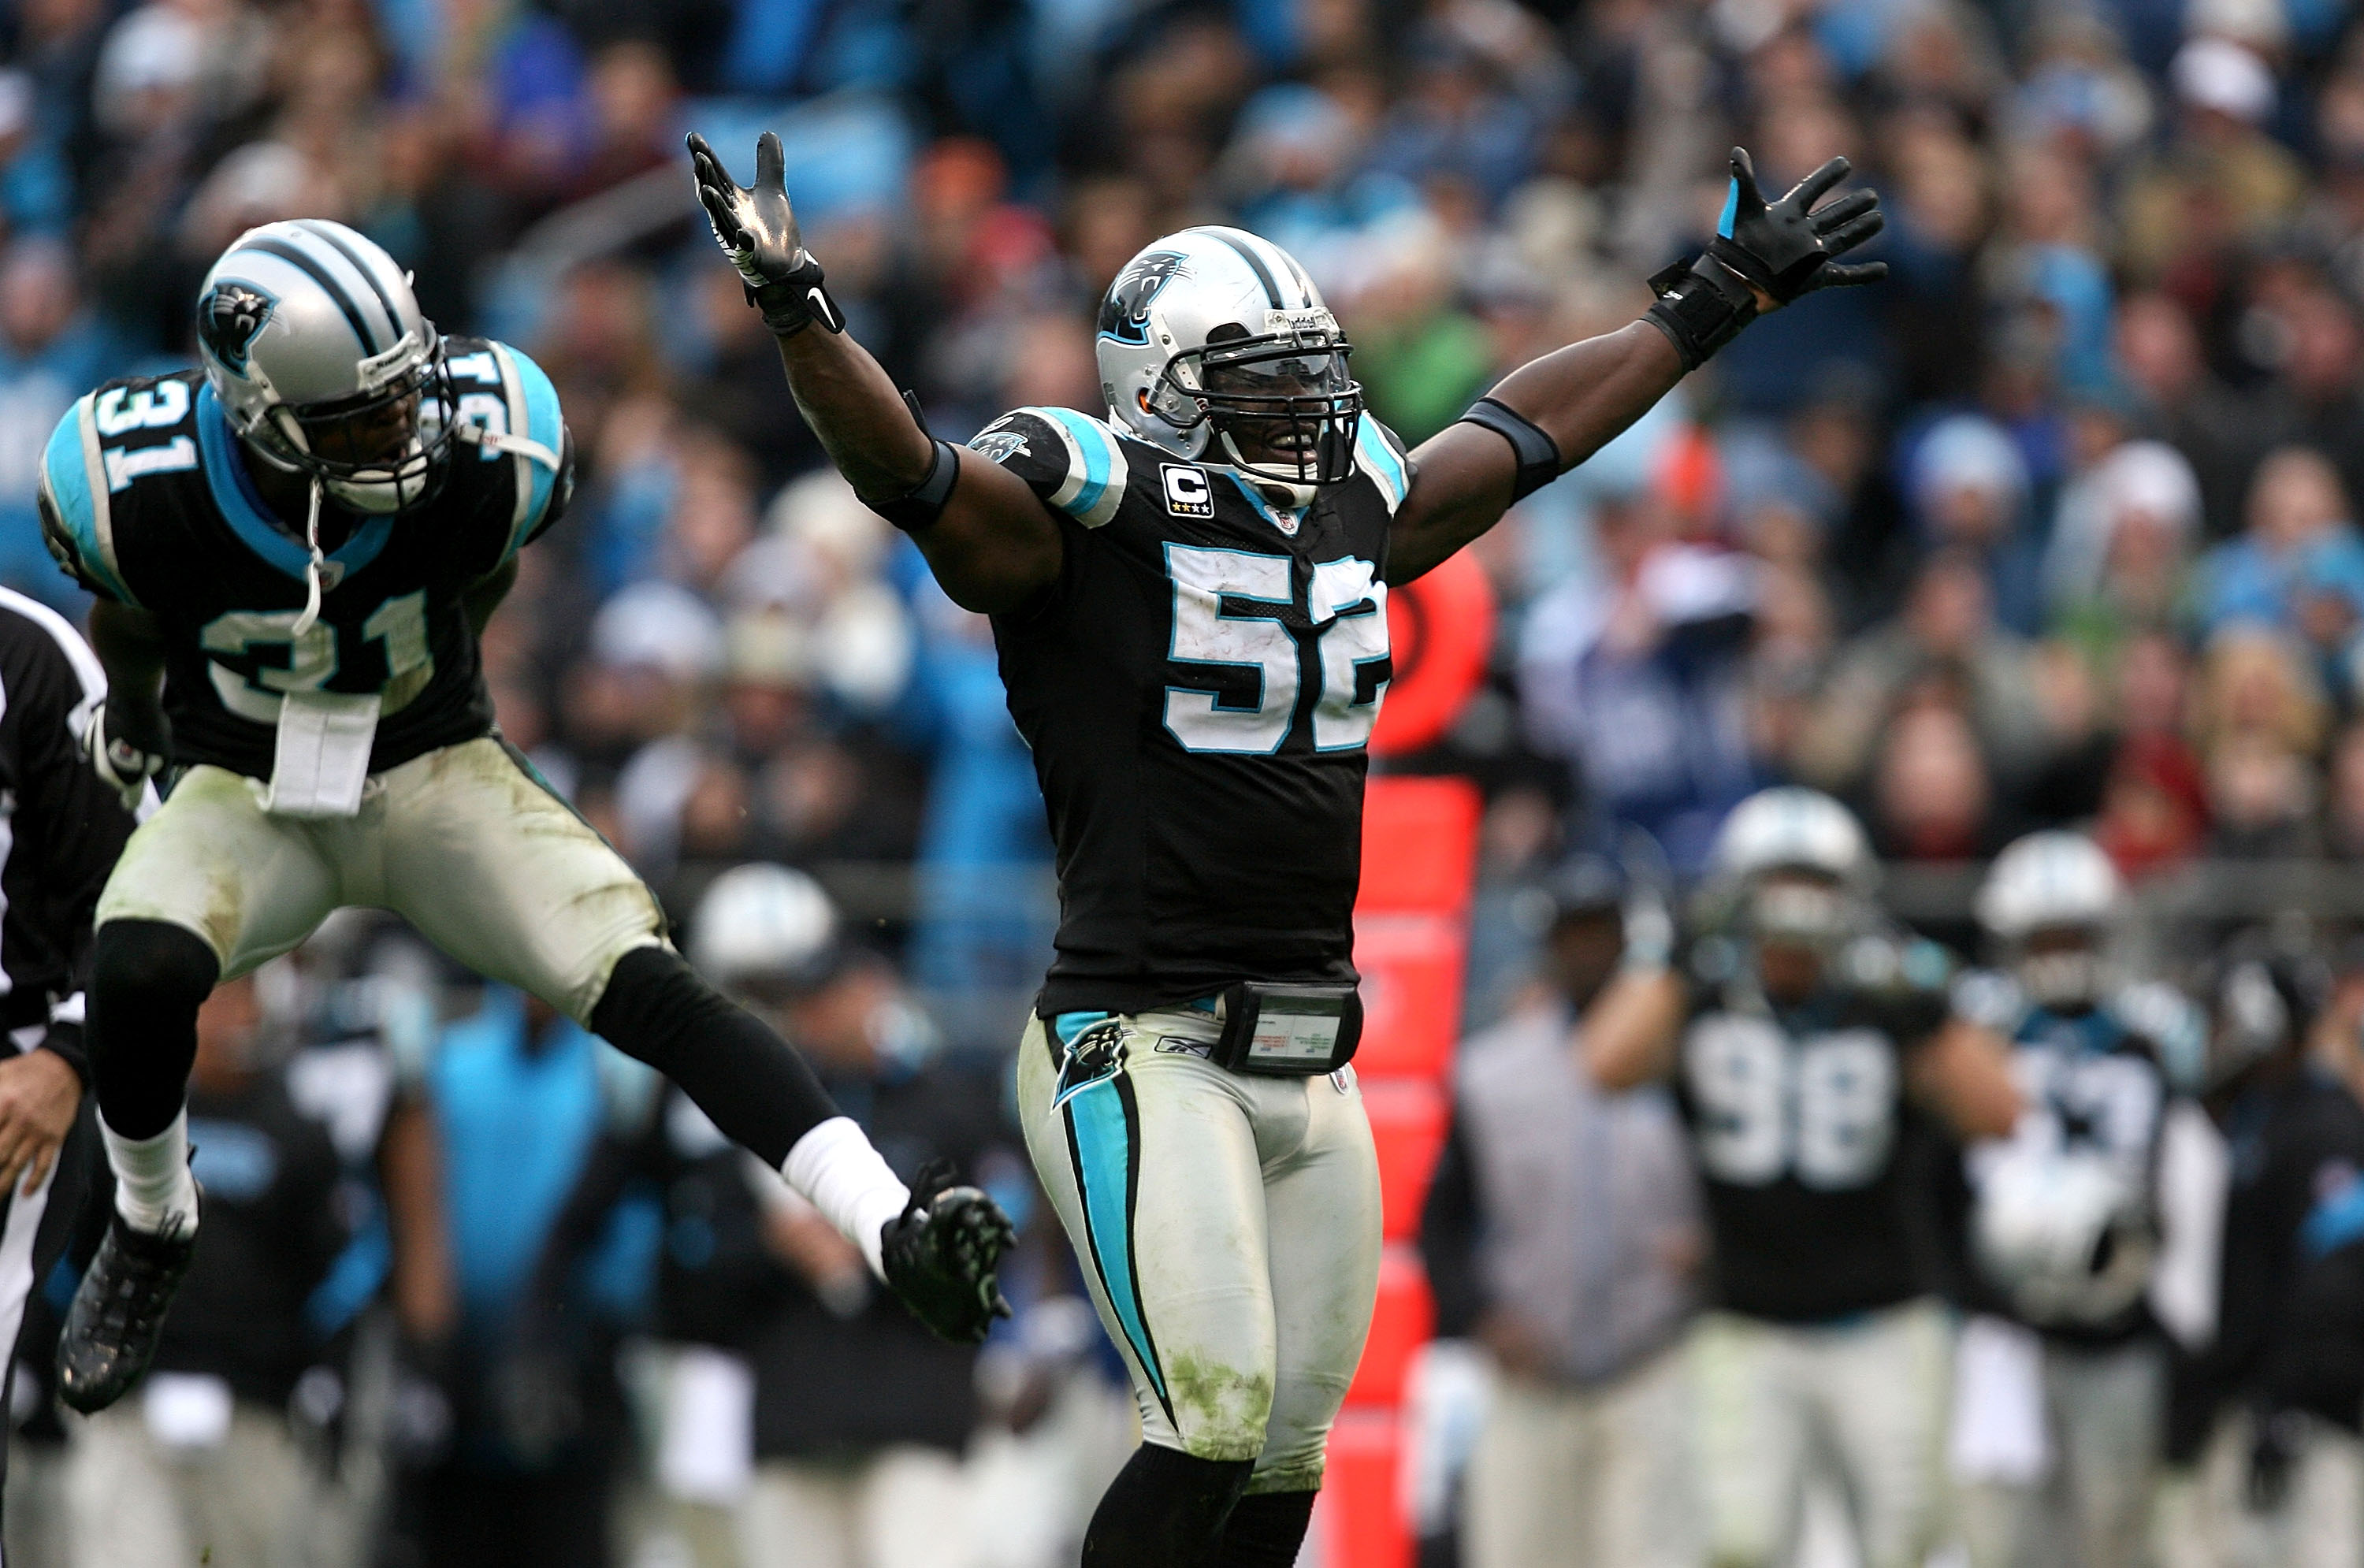 CHARLOTTE, NC - DECEMBER 06:  Teammates Richard Marshall #31 and Jon Beason #52 of the Carolina Panthers celebrate after a turnover during their game against the Tampa Bay Buccaneers at Bank of America Stadium on December 6, 2009 in Charlotte, North Carol